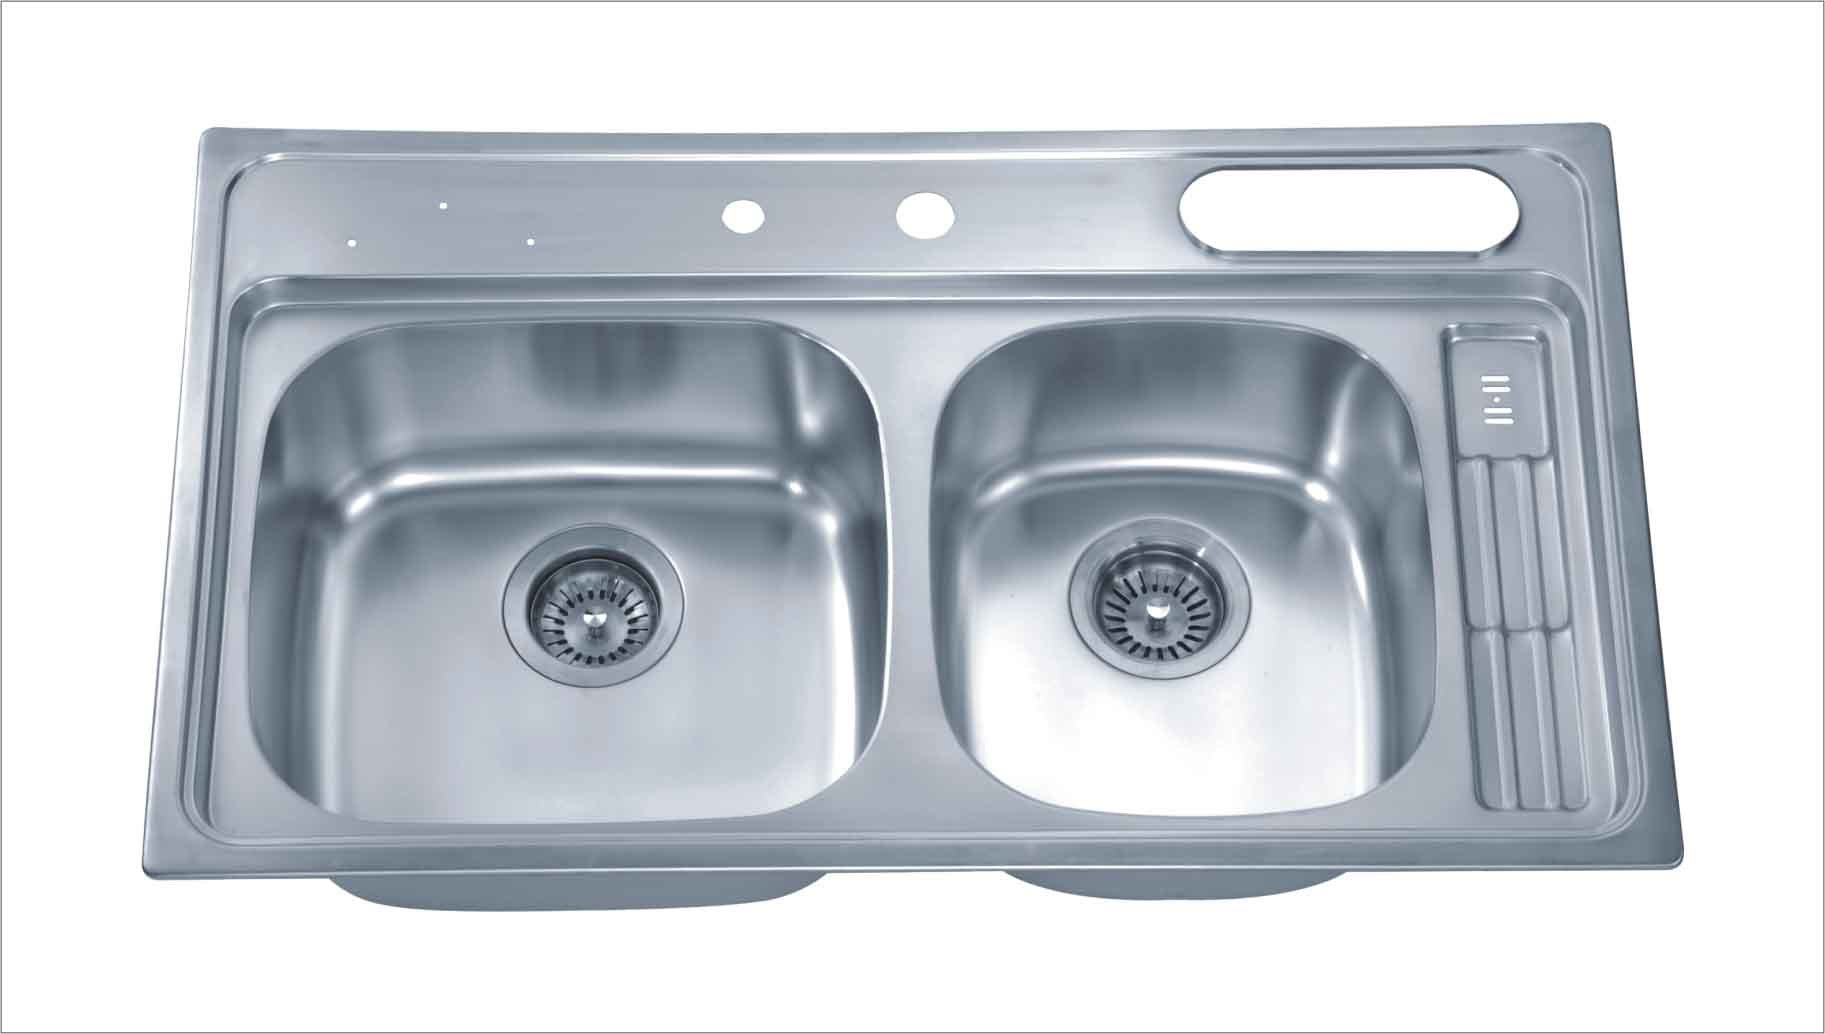 Stainless Steel Kitchen Sinks : Theme of the day:cheap stainless steel kitchen sinks